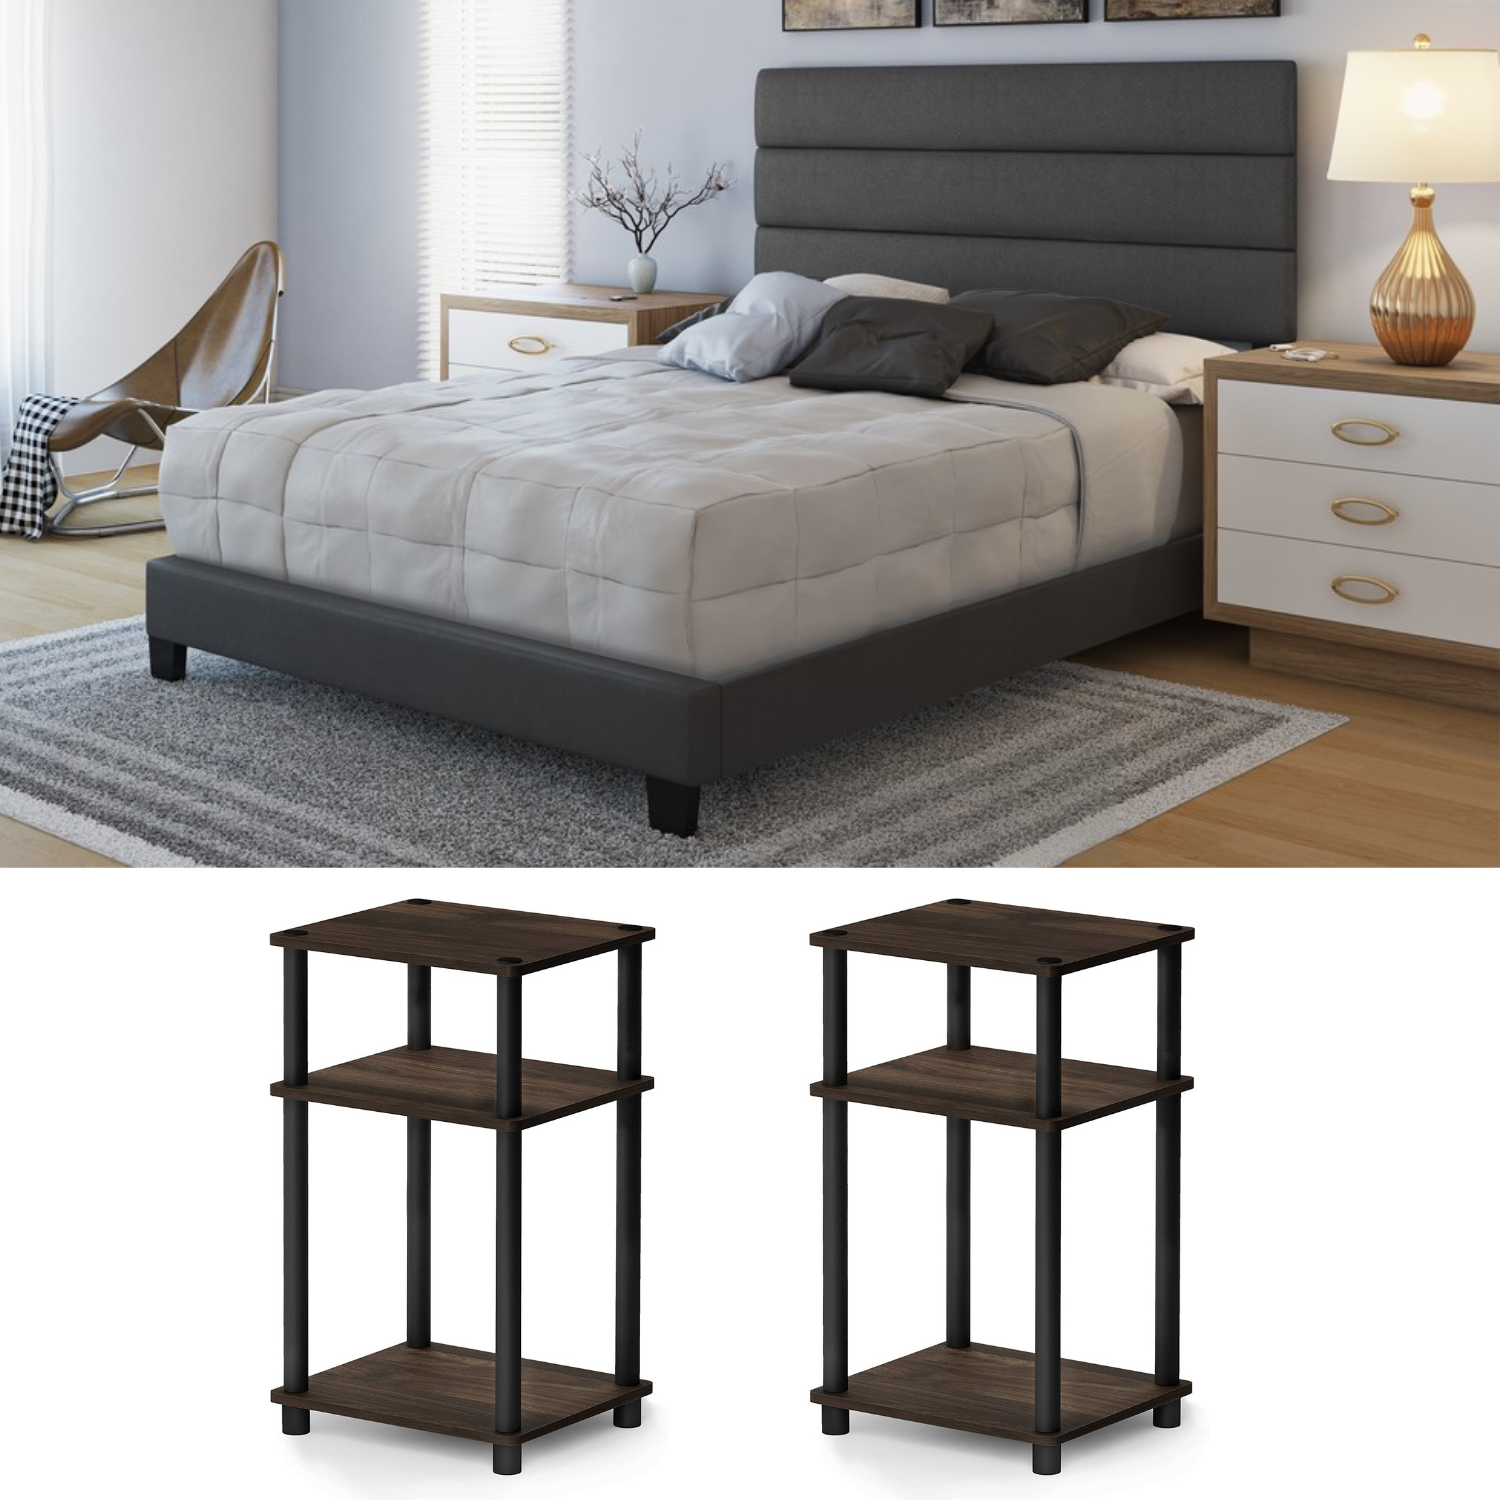 Queen Size Bedroom Set Furtniture NEW 3 Piece Faux Leather Modern Bed